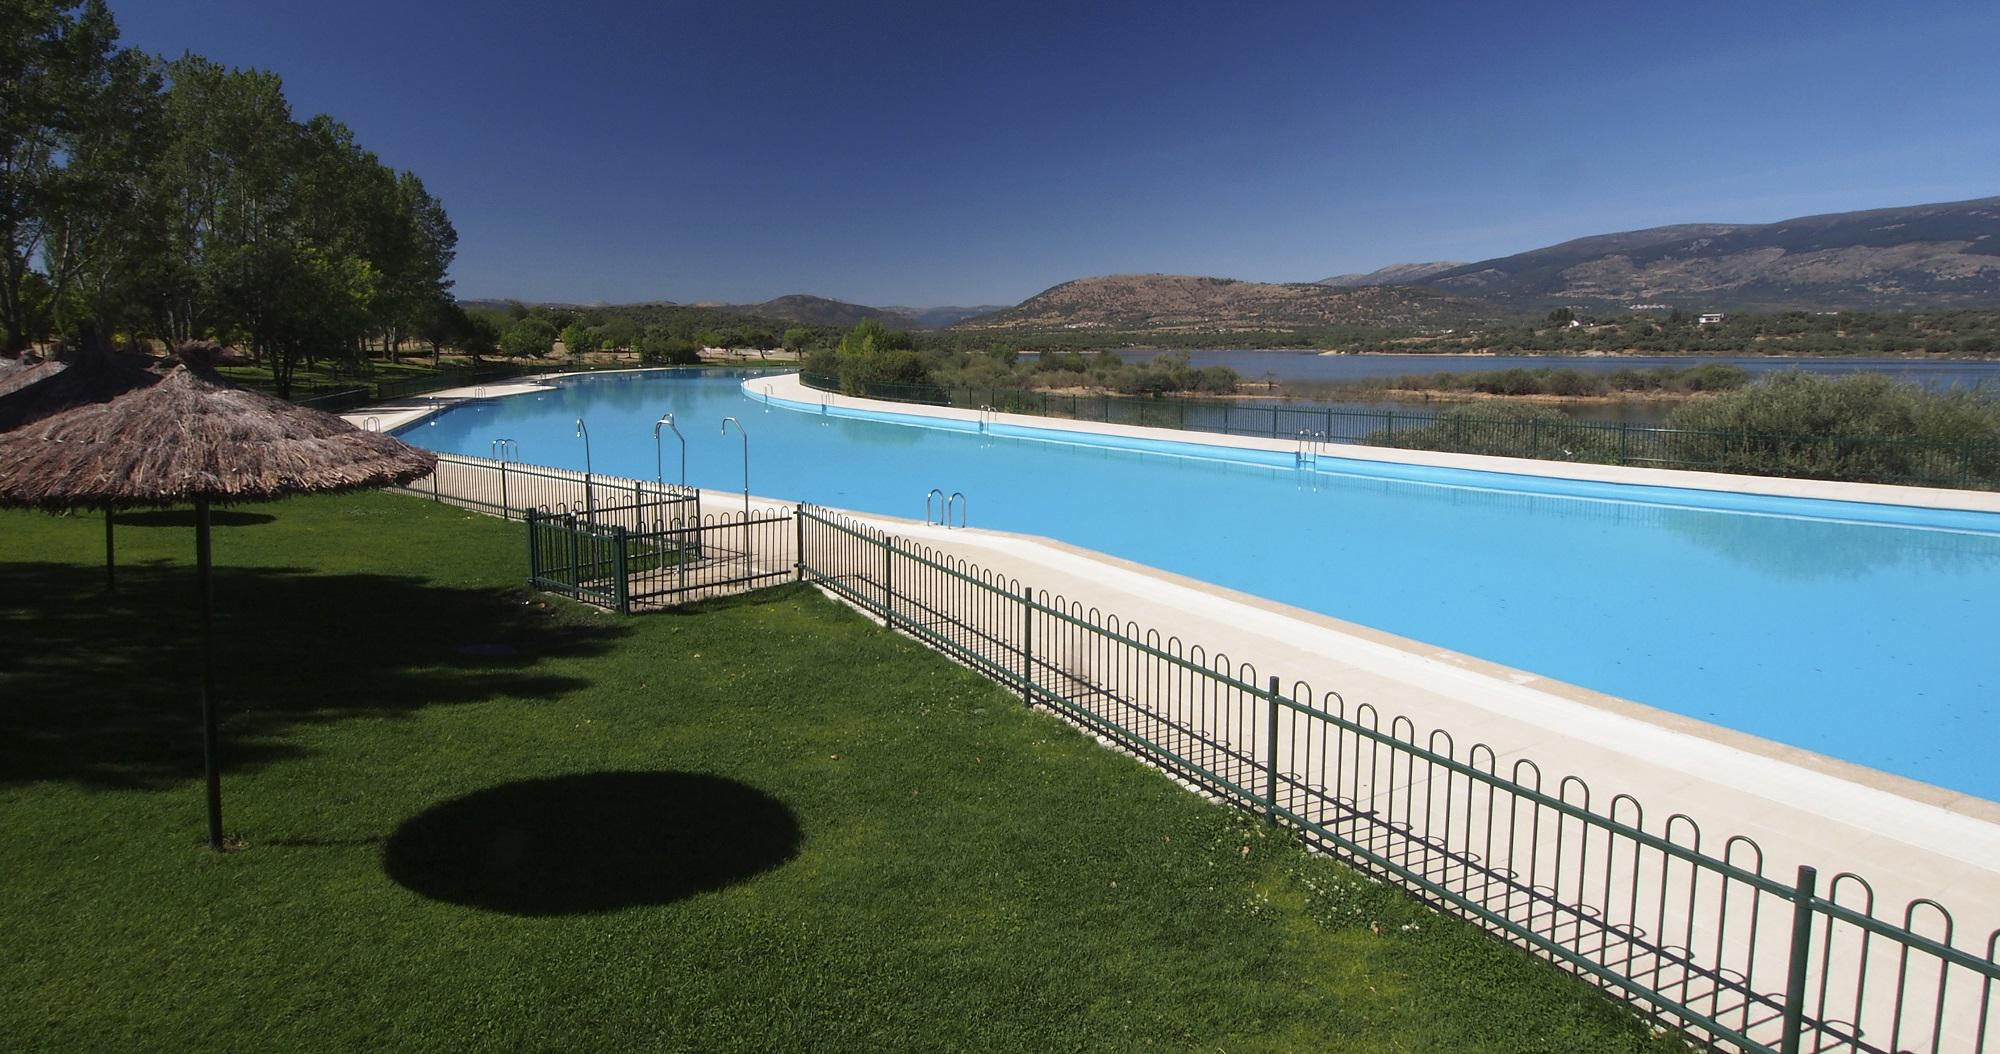 Abren las piscinas del rea recreativa de riosequillo en for Piscina municipal moralzarzal